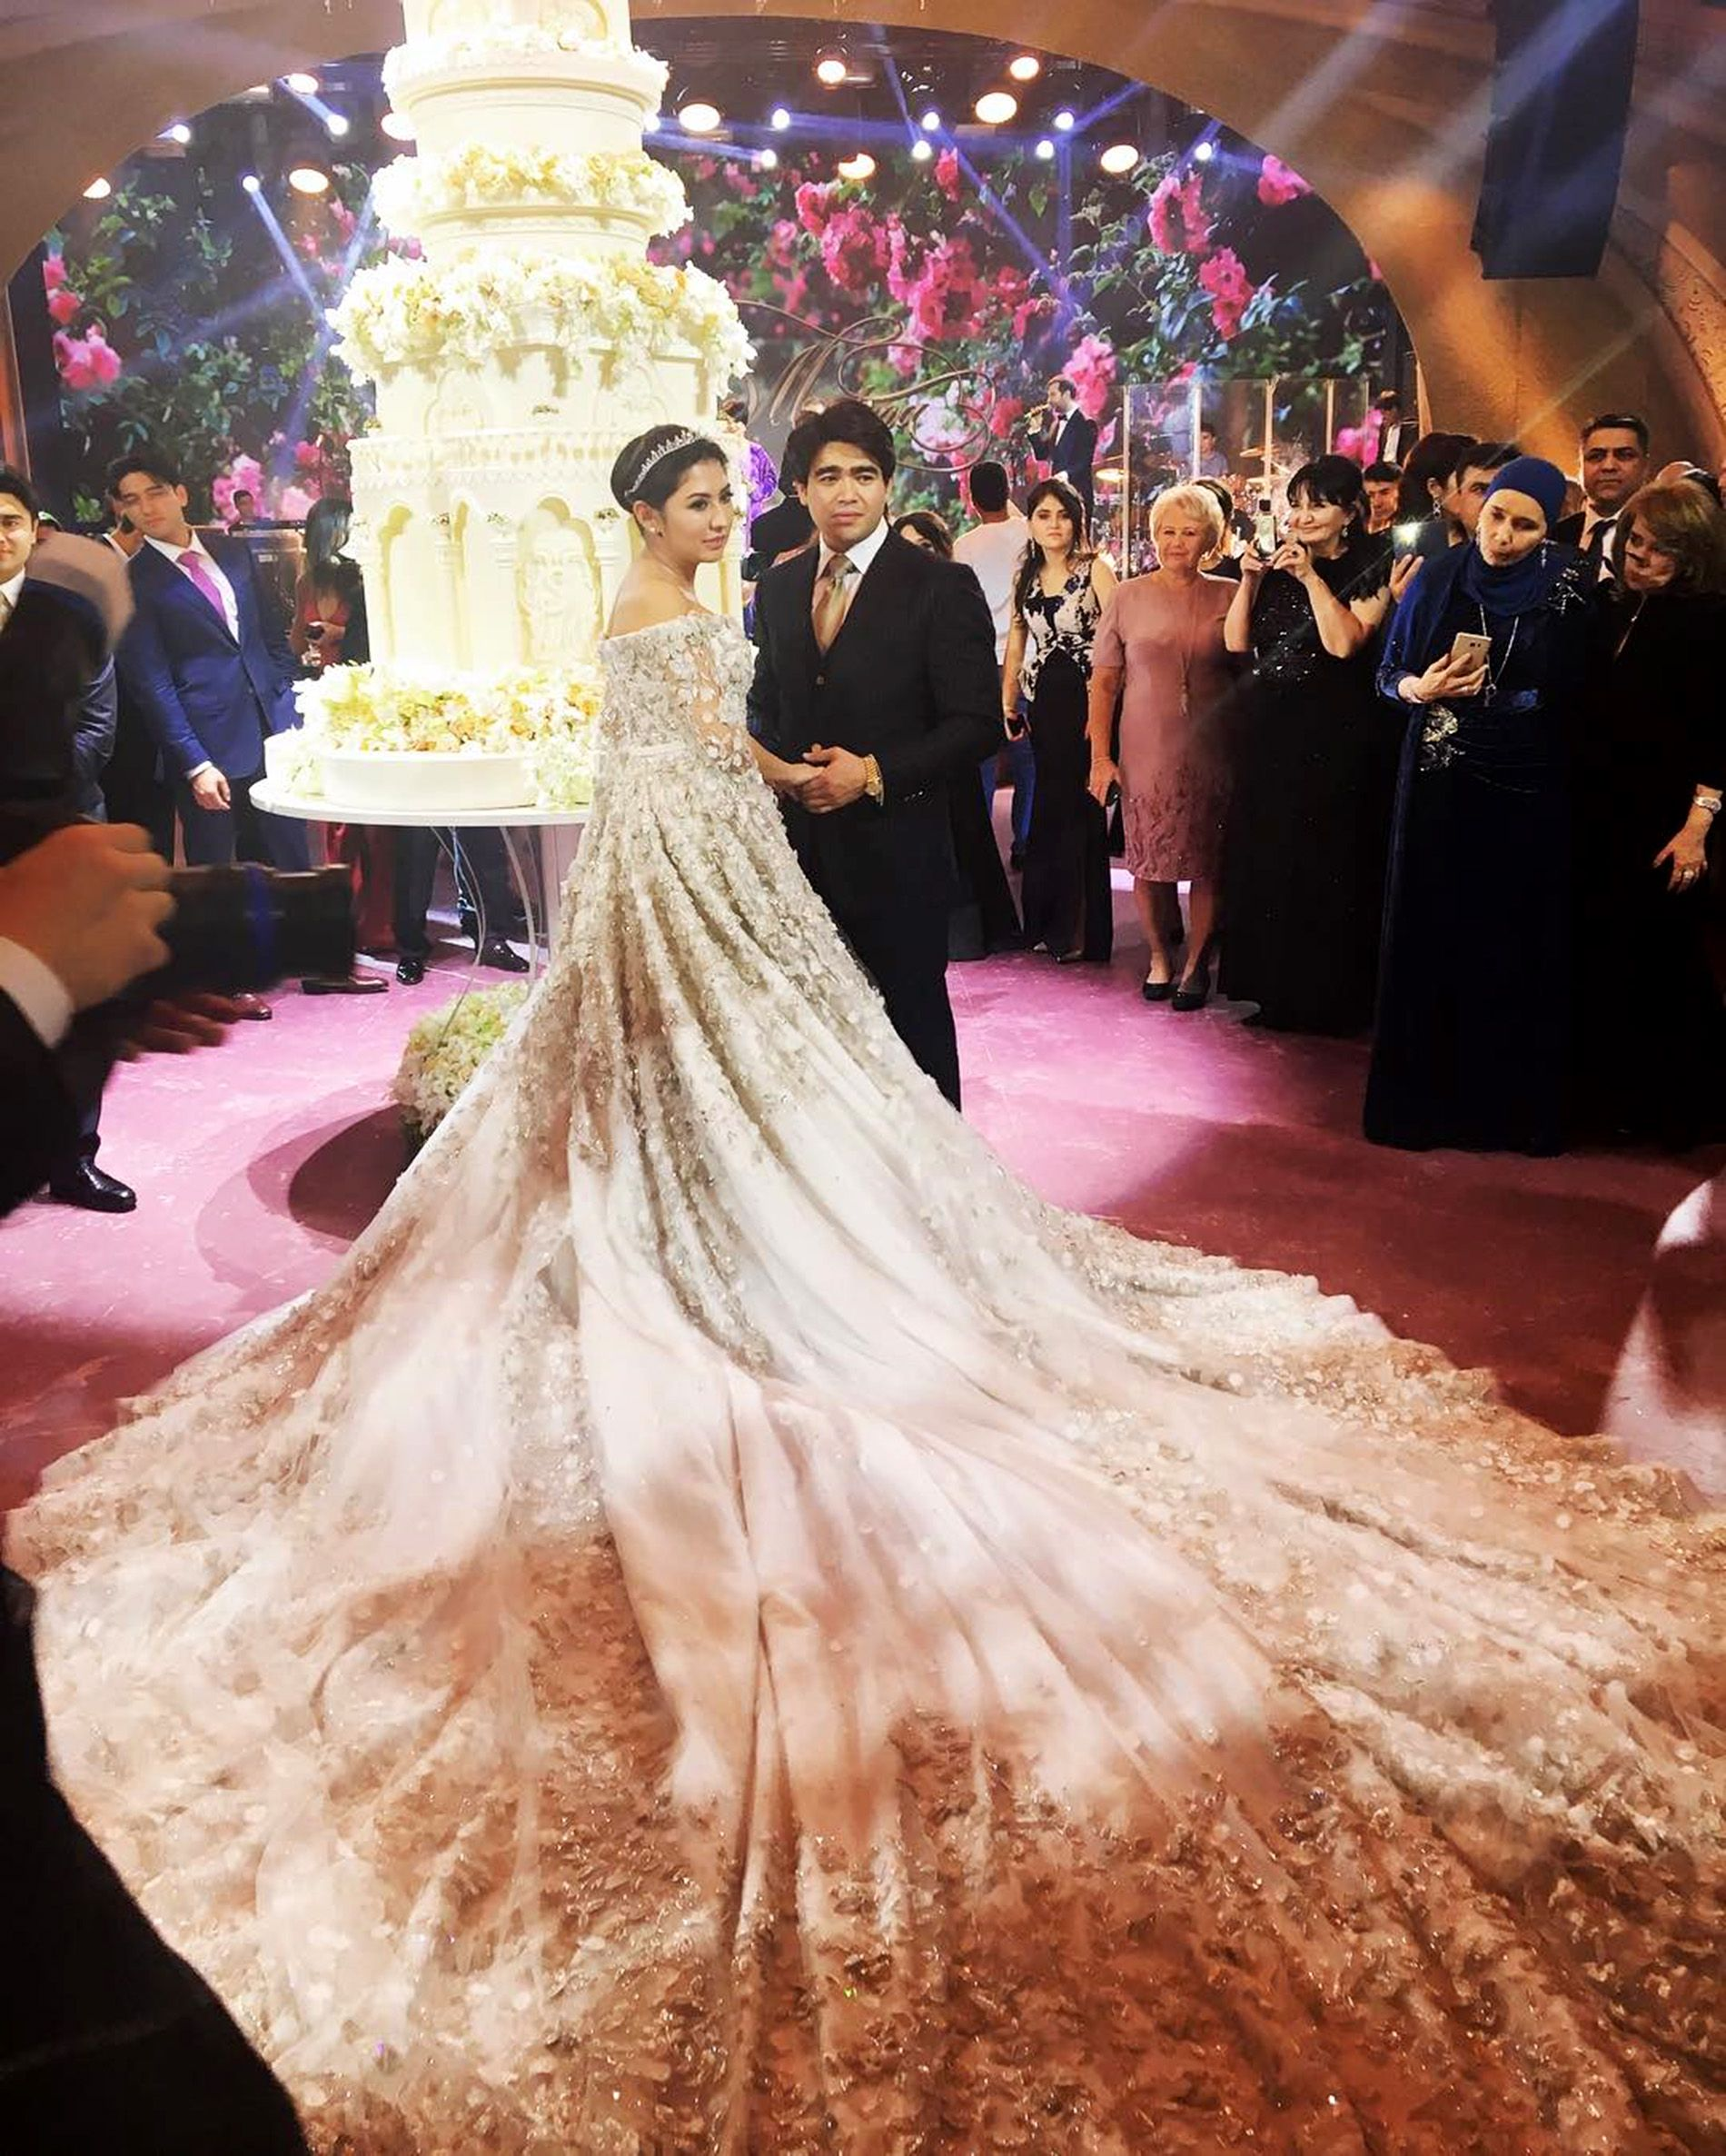 Russian wedding dresses images